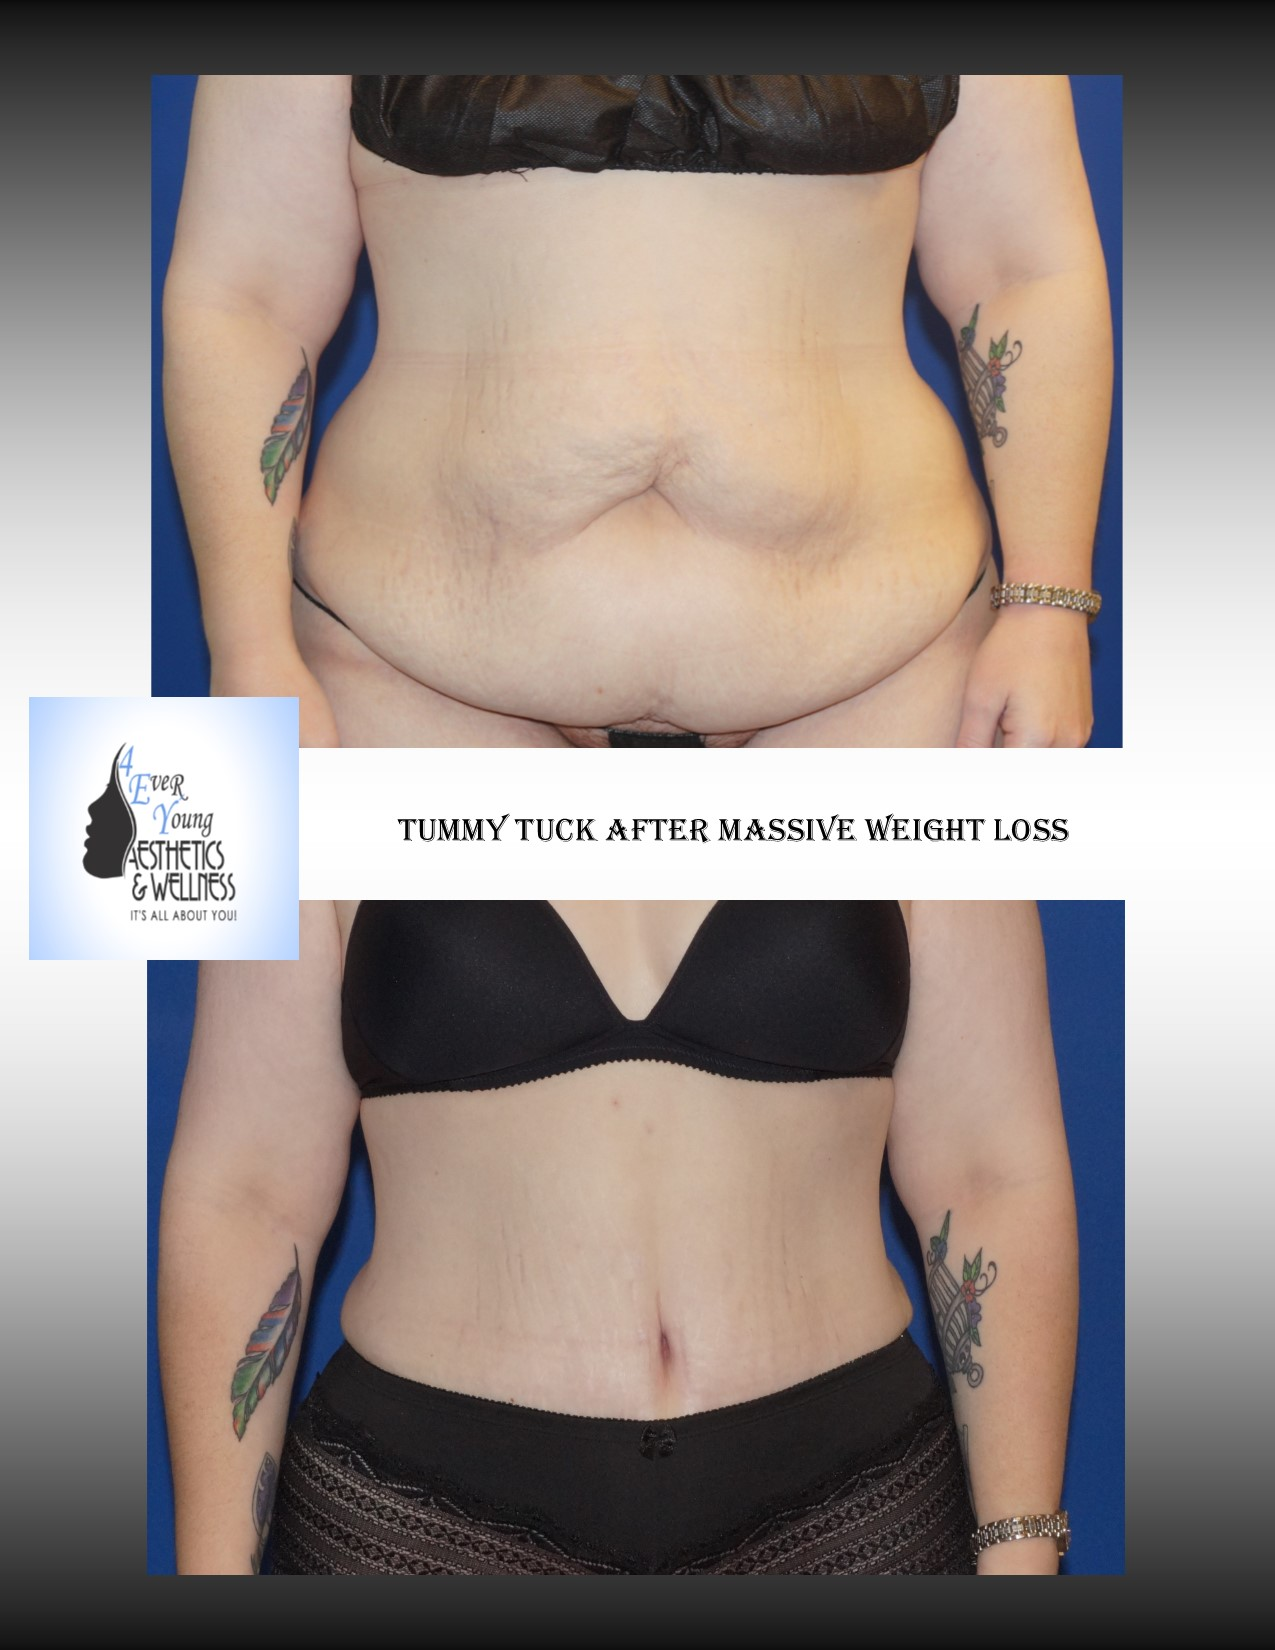 Tummy tuck plastic surgery, Tummy Tuck, also known as abdominoplasty, lipoabdominoplasty, liposuction tummy tuck, is a procedure to that corrects a rectus diasthasis and removes excess or poor quality skin from the abdomen. We combine our tummy tuck with liposuction in order to contour the body resulting in a flat stomach with scars that are placed low in the bikini line. Our liposuction is accomplished by either traditional tumescent liposuction, laser liposuction (Smartlipo), vaser liposuction with the use of a power assisted liposuction handle to remove fat more thoroughly and rapidly. We use abdominal liposuction, flank liposuction, back liposuction, arm liposuction, thigh liposuction and ankle liposuction to remove unsightly fat from problem areas with our tumescent liposuction procedures with or without sedation. If you desire we use autologous fat transfer (fat grafting) to use the fat obtained as the most natural dermal filler unlike synthetic fillers (Restylane, Juvederm, Sculptra, Radiesse, Belotero, Perlane) to improve fine lines and wrinkles of the face, hand rejuvenation with fat, fat transfer to breast, Brazilian Butt Lift (Butt Augmentation), liposculpture, lip augmentation with fat.  Fat transfer to the breast can be a great alternative to breast augmentation, saline implants, silicone implants, breast augmentation with mastopexy or just to improve volume in the upper pole of the breast. Our autologous fat transfer is second to none and we utilize Platelet-Rich Plasma (PRP) which helps stabilize the fat transfer faster by promoting blood vessels to grow into the fat grafting. Most people think that a Brazilian butt lift (BBL) is a plastic surgery procedure but instead it is a cosmetic surgery procedure strictly performed for enhancement of the buttock area to transform your butt into the big Brazilian butt and replicate the popular Brazilian ass that Brazilian butt women have been getting Brazilian butt lifts to have for years.  As part of our mommy 